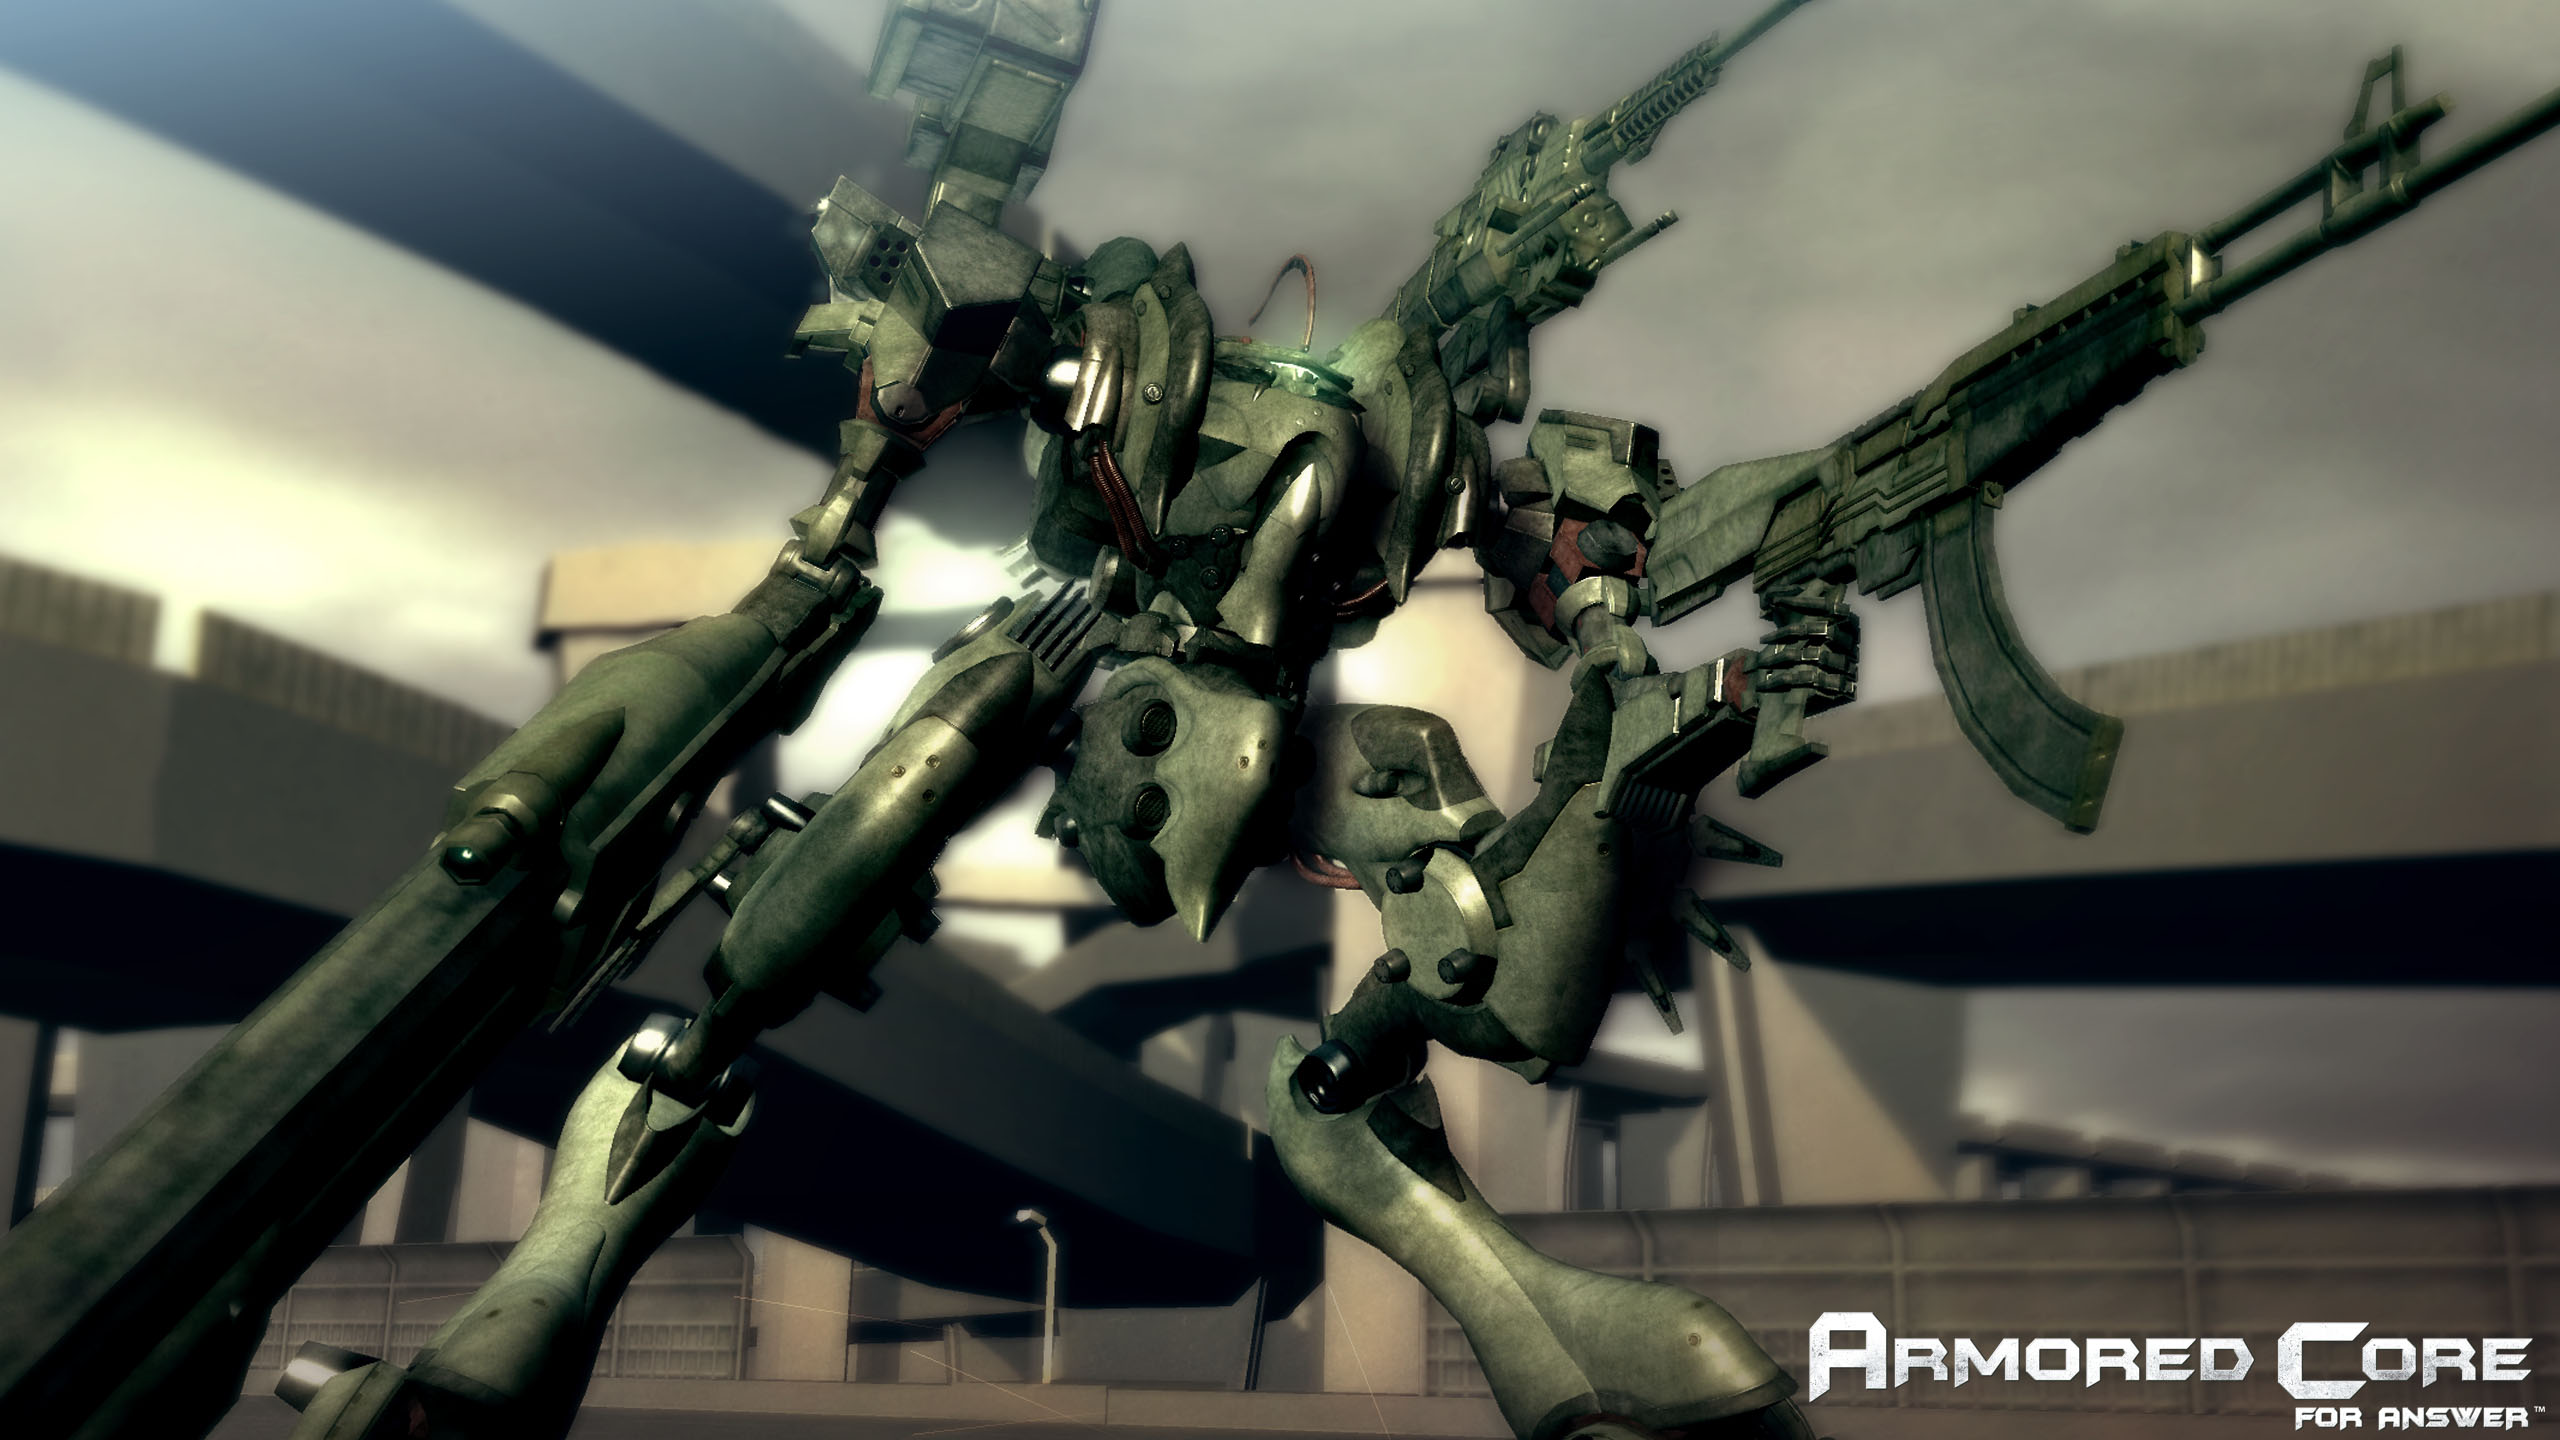 Armored Kodakan Armored Core For Answer Oldking Inaction